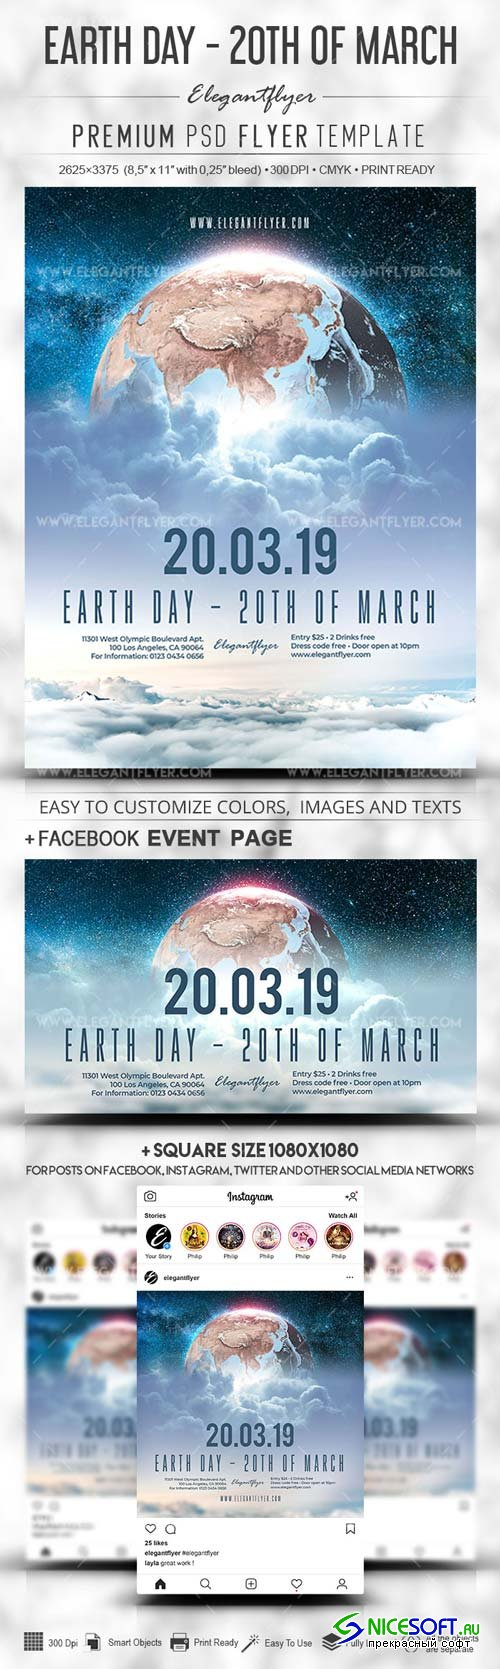 Earth Day V1 2019 20th of March PSD Flyer Template + Facebook Cover + Instagram Post